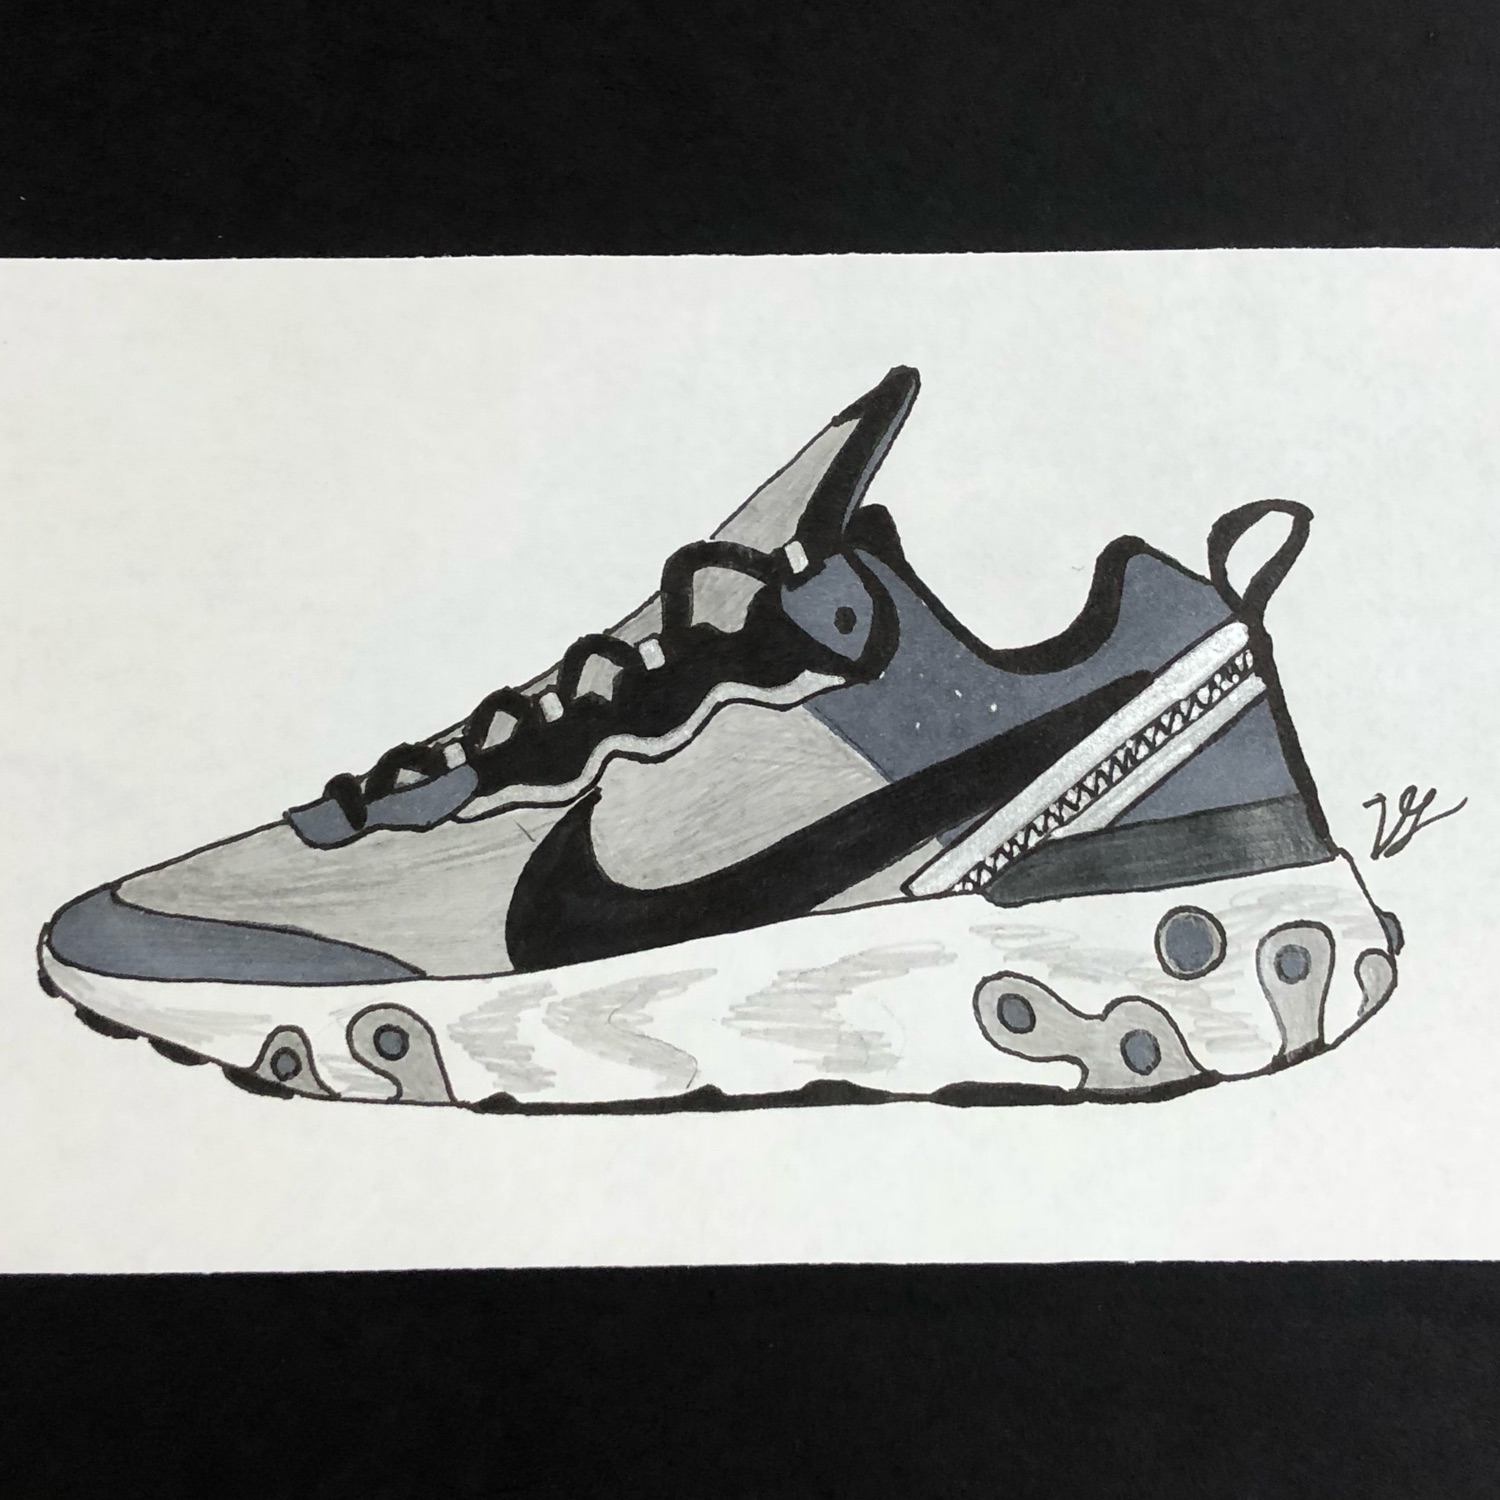 brand new 1d852 91895 3 Portraits: Nike React Element 87, Unc Off White